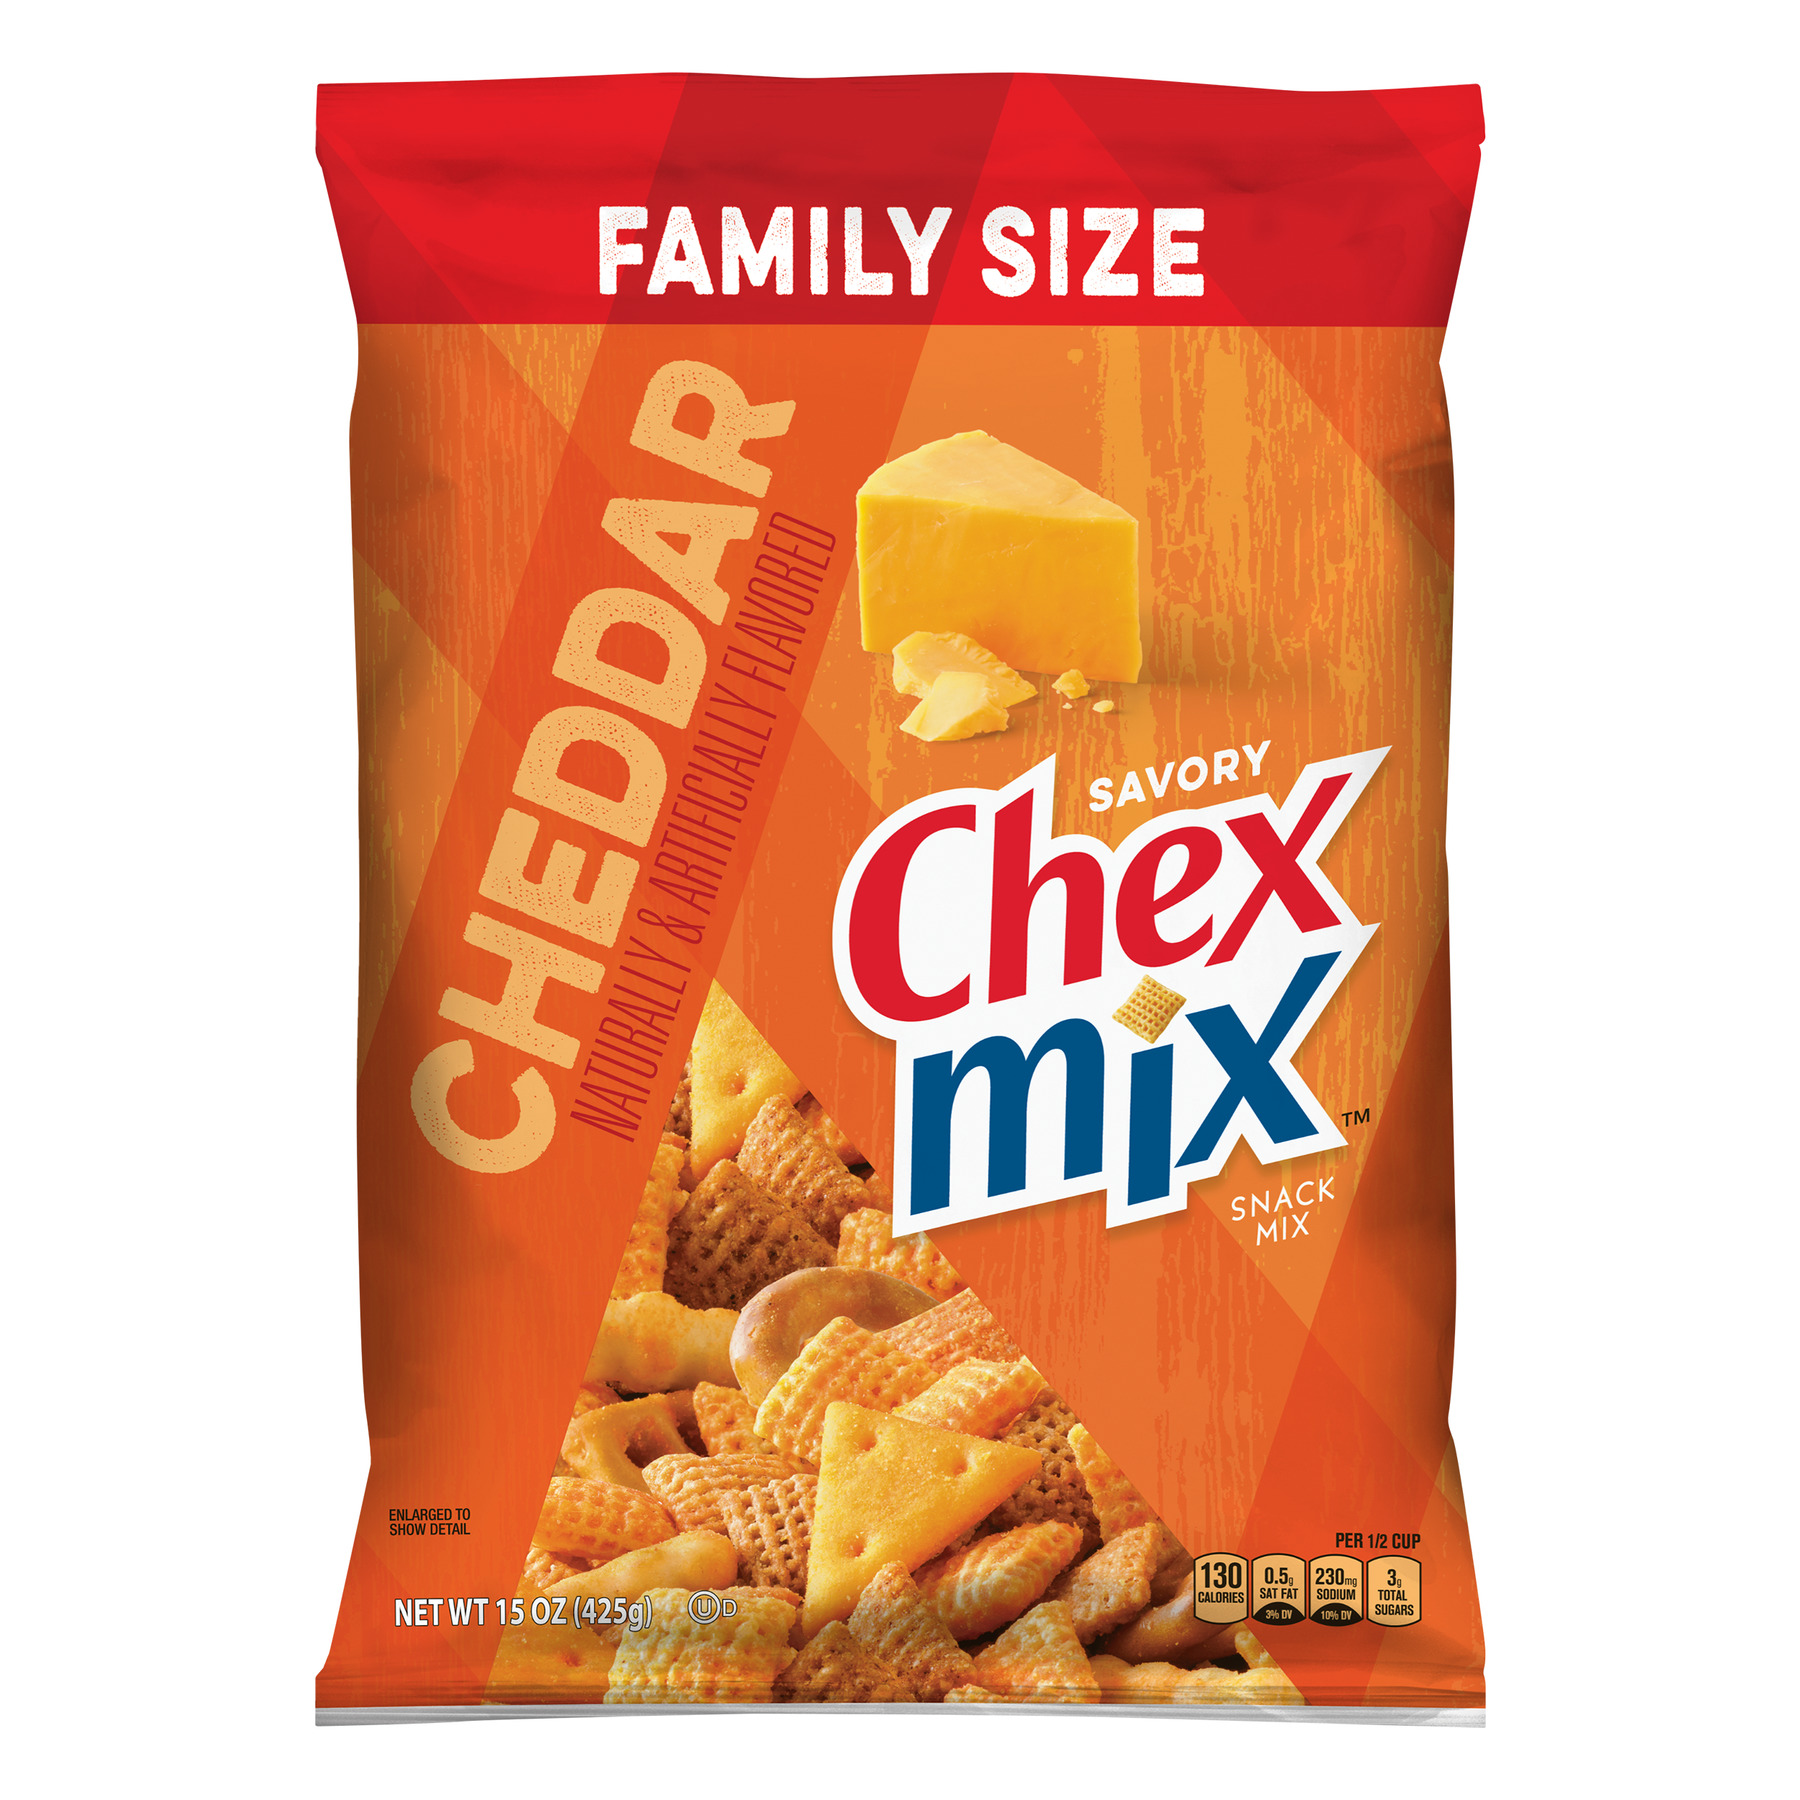 Chex Mix Savory Cheddar Snack Mix, 15 oz Bag